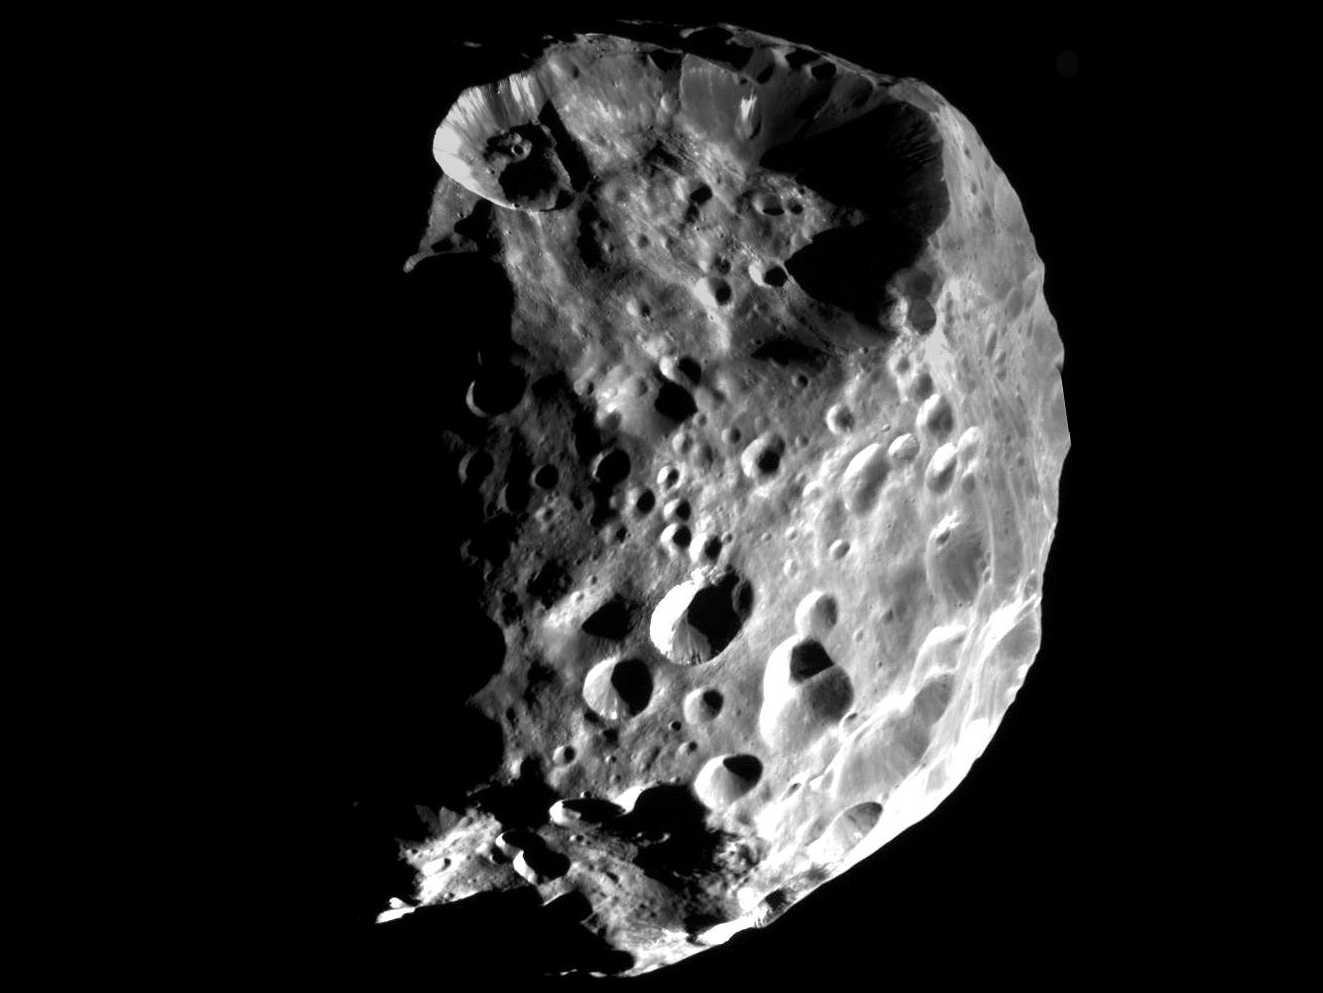 Phoebe, captured during Cassini's flyby on Jun. 11, 2004.